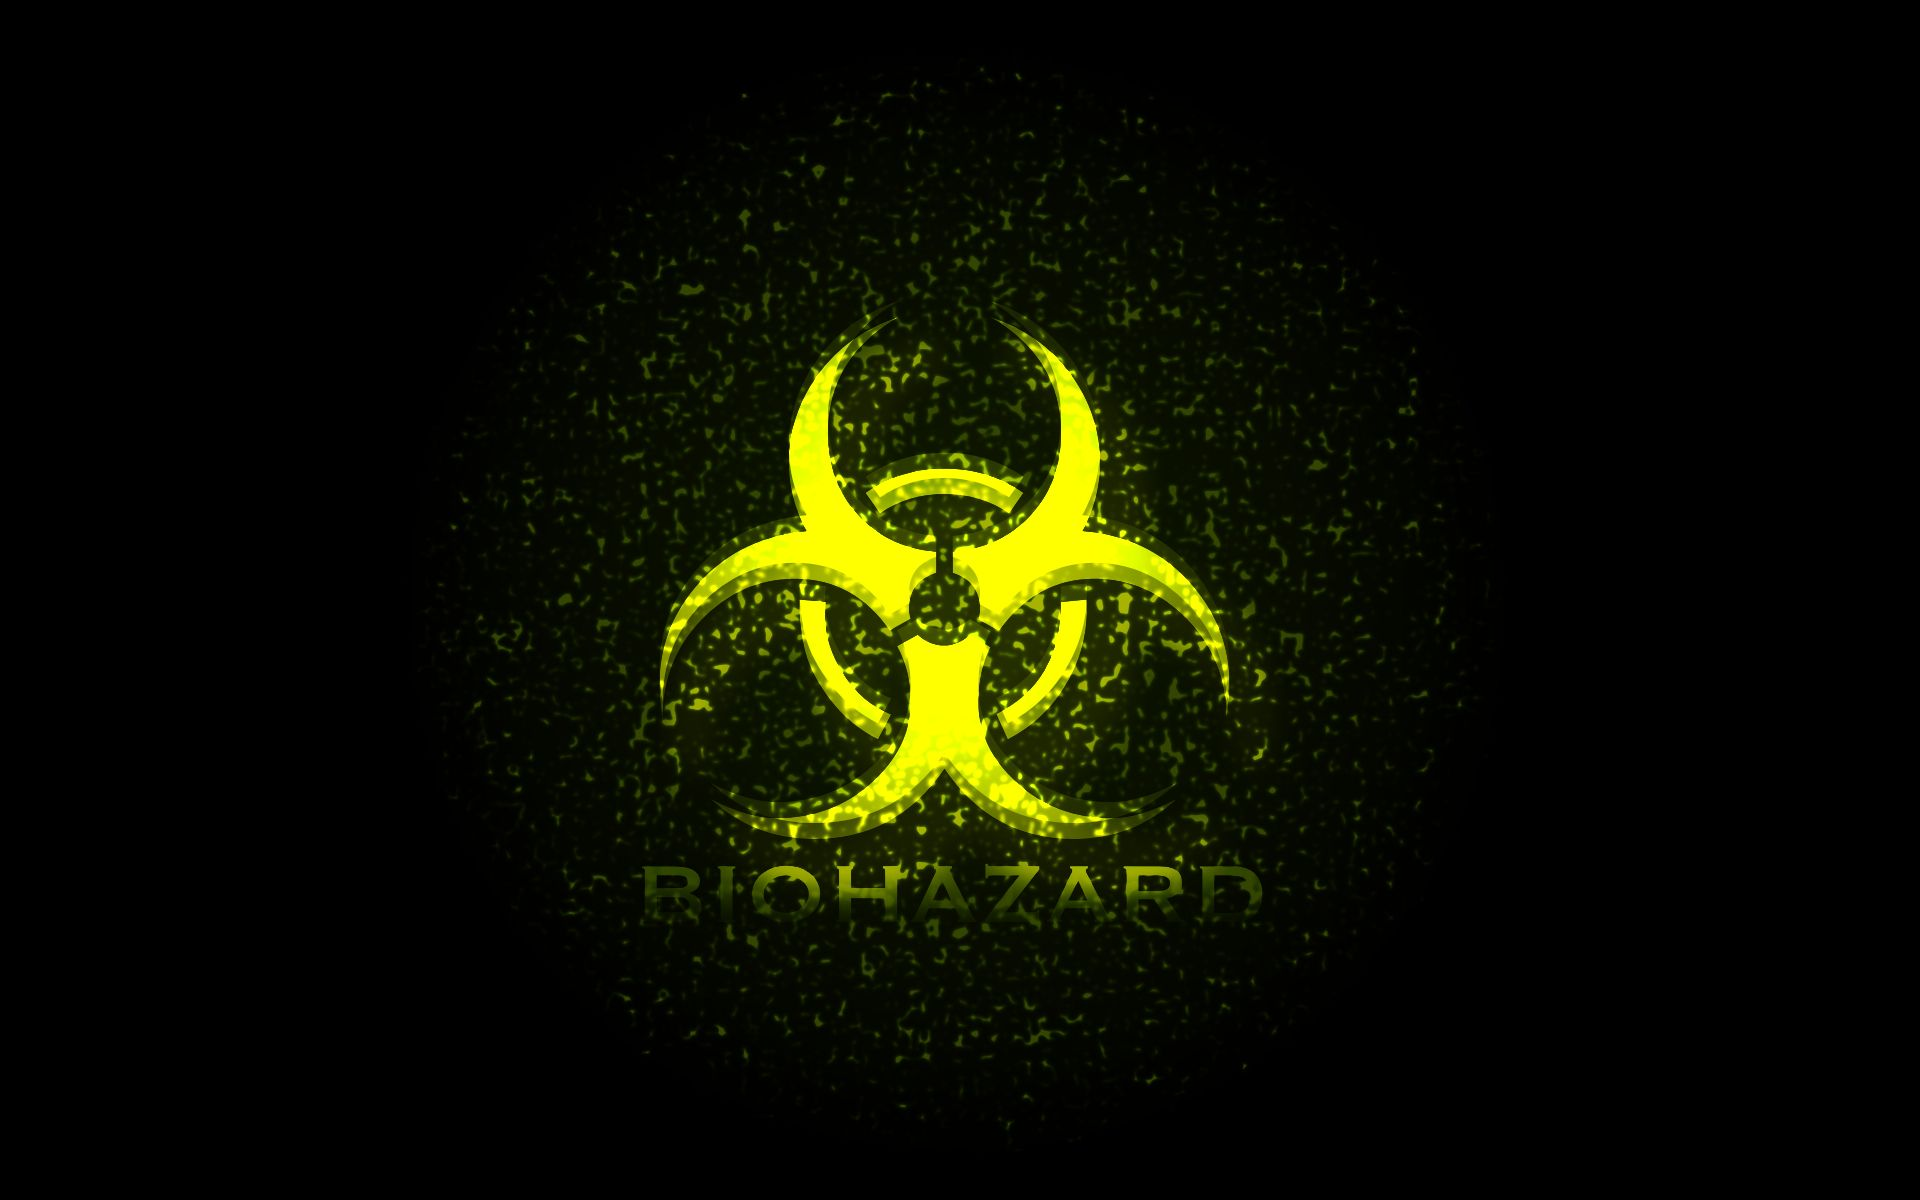 Mx Radiation Wallpapers Radiation Adorable Desktop Pictures Logo Background Wallpaper Cool Logo